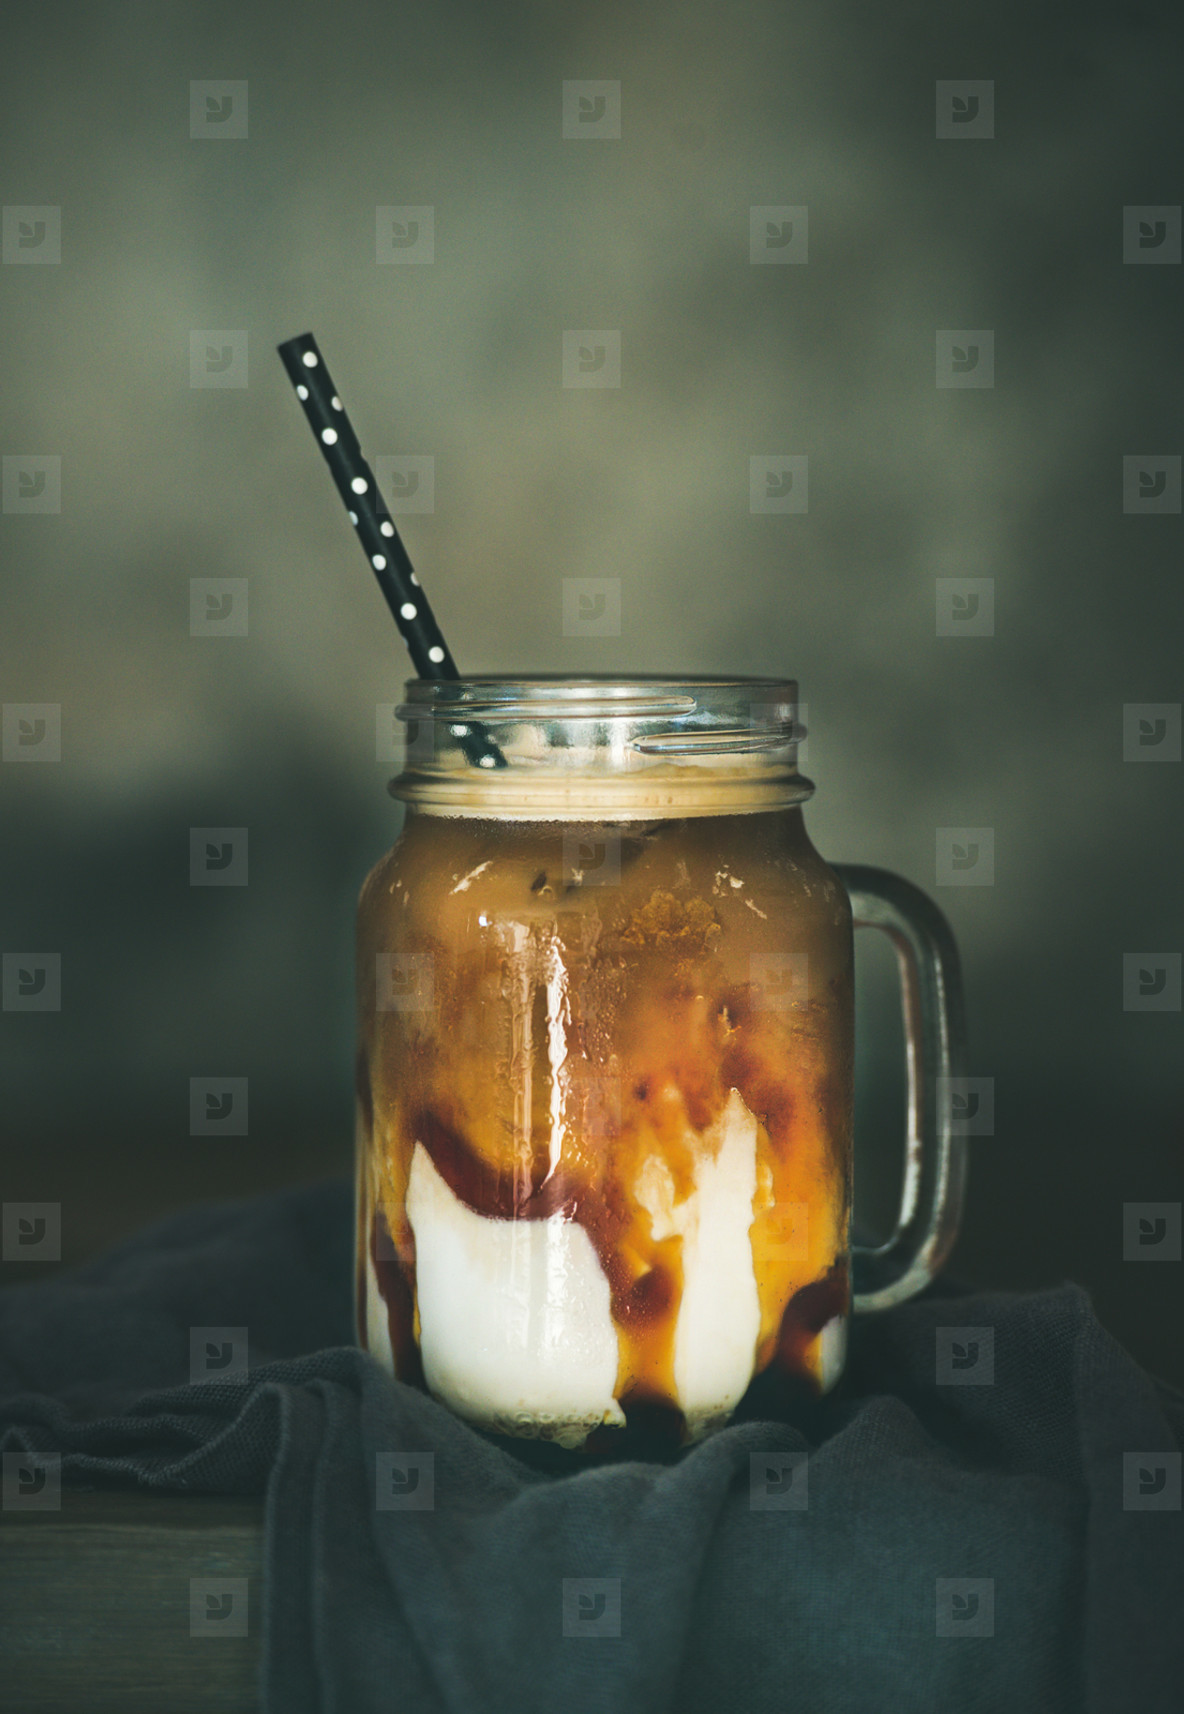 Iced caramel macciato coffee with milk in jar on table